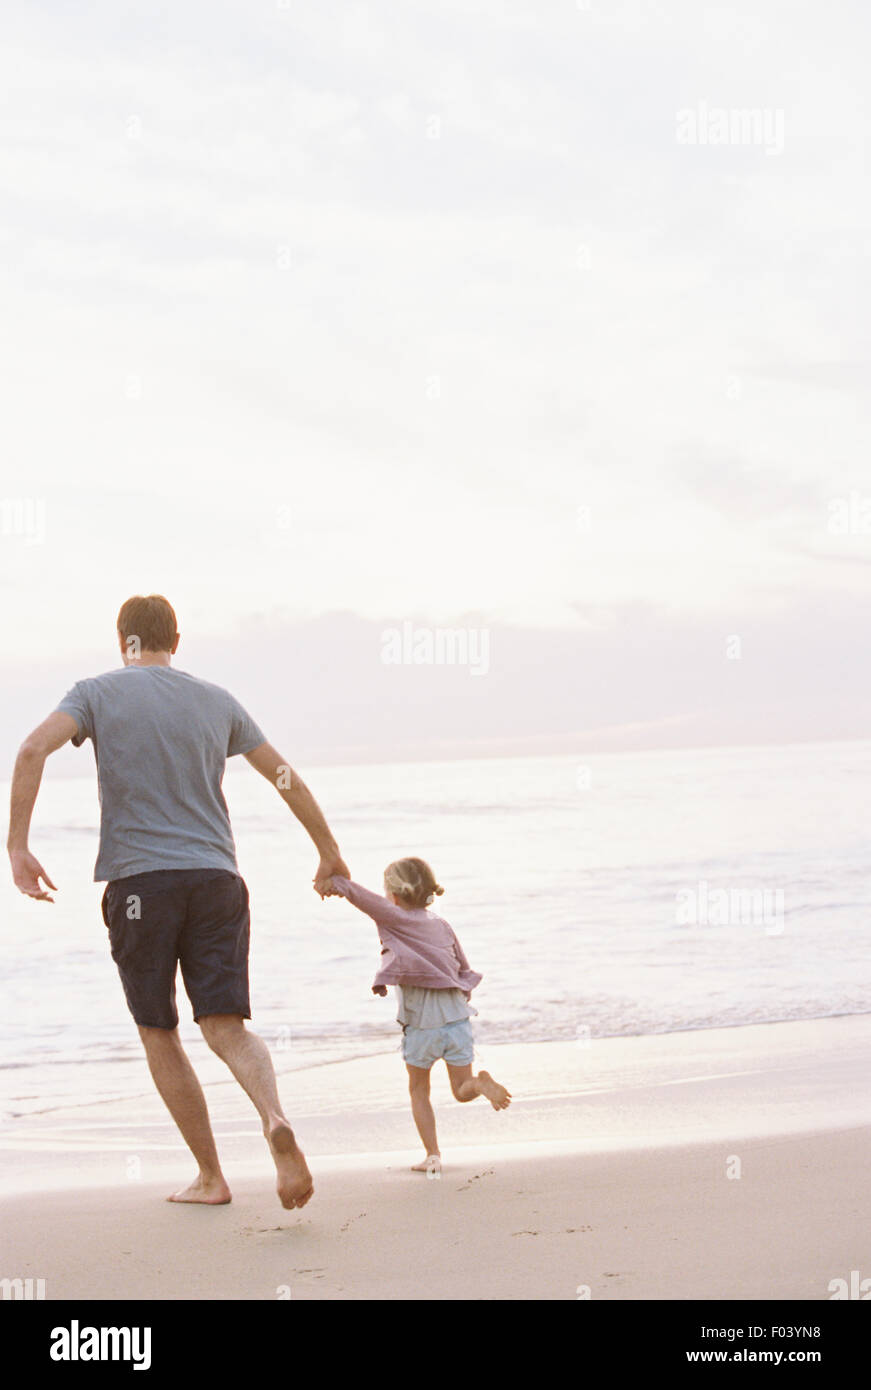 Man playing on a sandy beach by the ocean, holding his young daughter's hand. - Stock Image